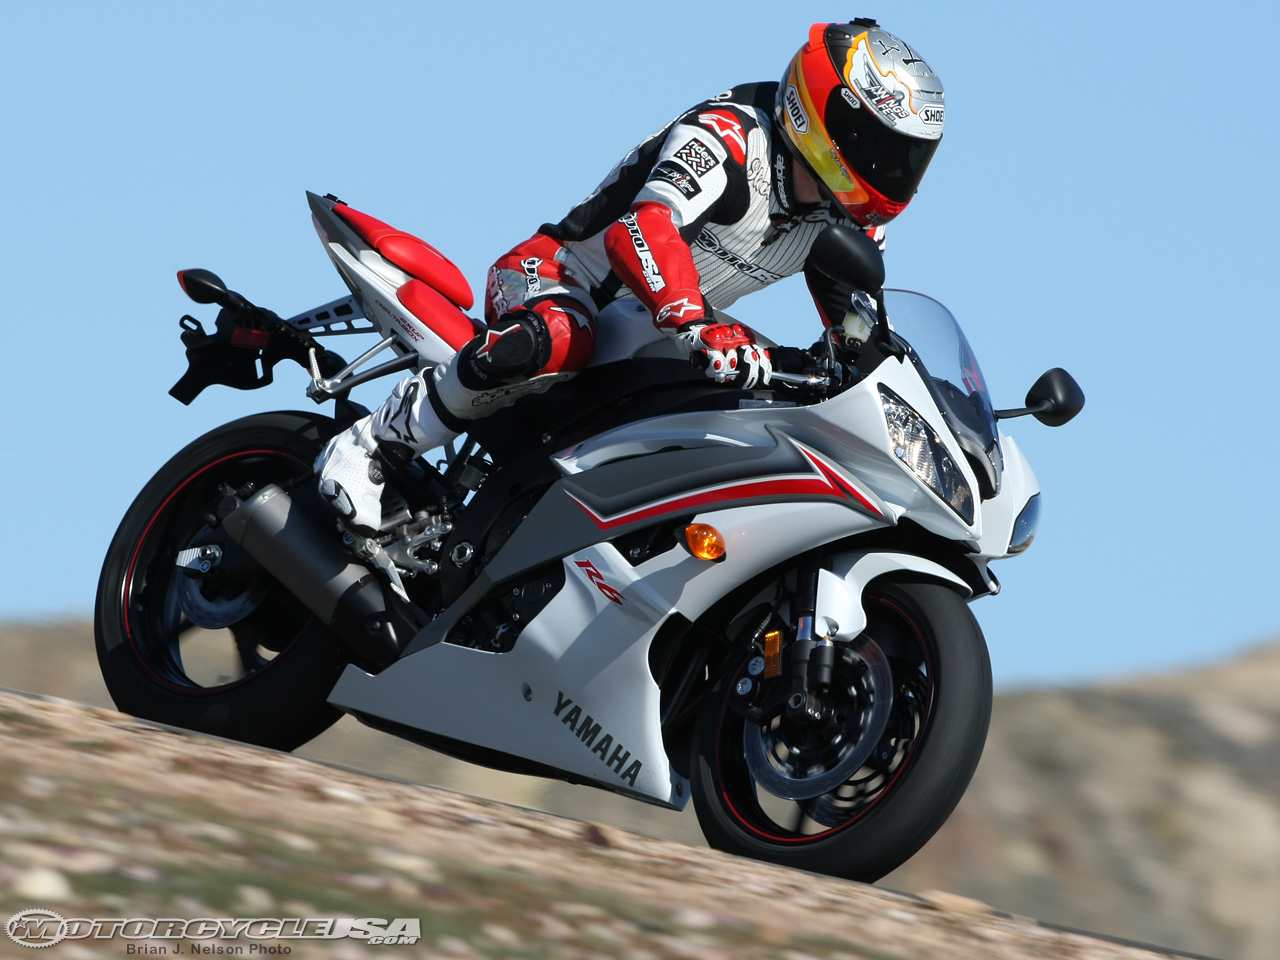 HQ Yamaha Yzf R6 Wallpapers | File 296.21Kb